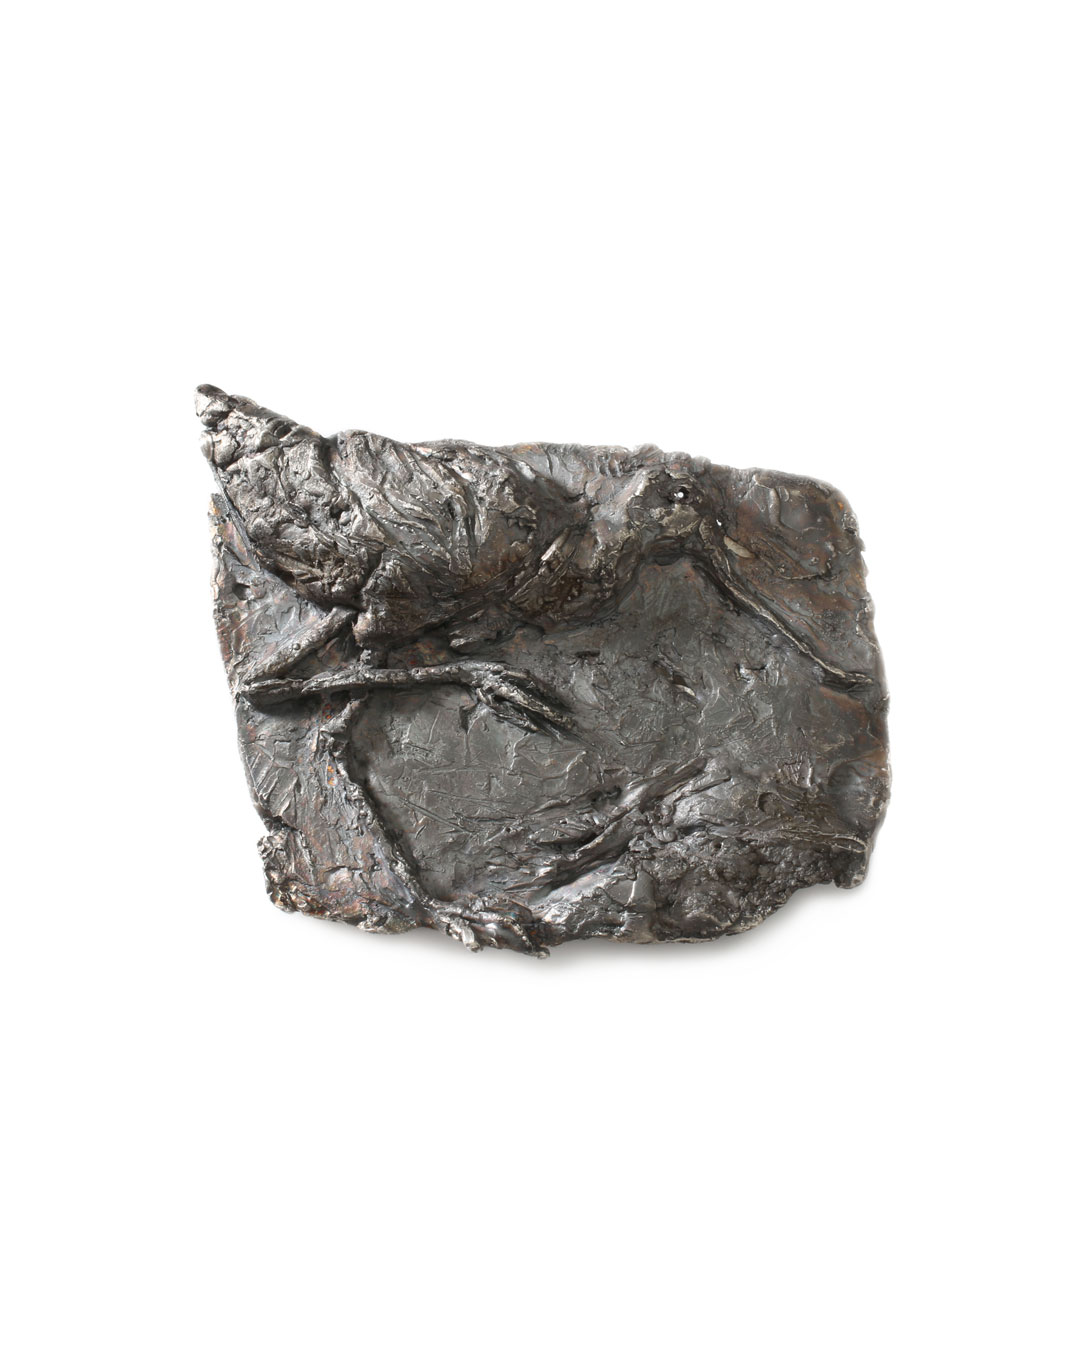 Juliane Brandes, untitled, 2013, brooch; silver, 65 x 50 mm, €1575